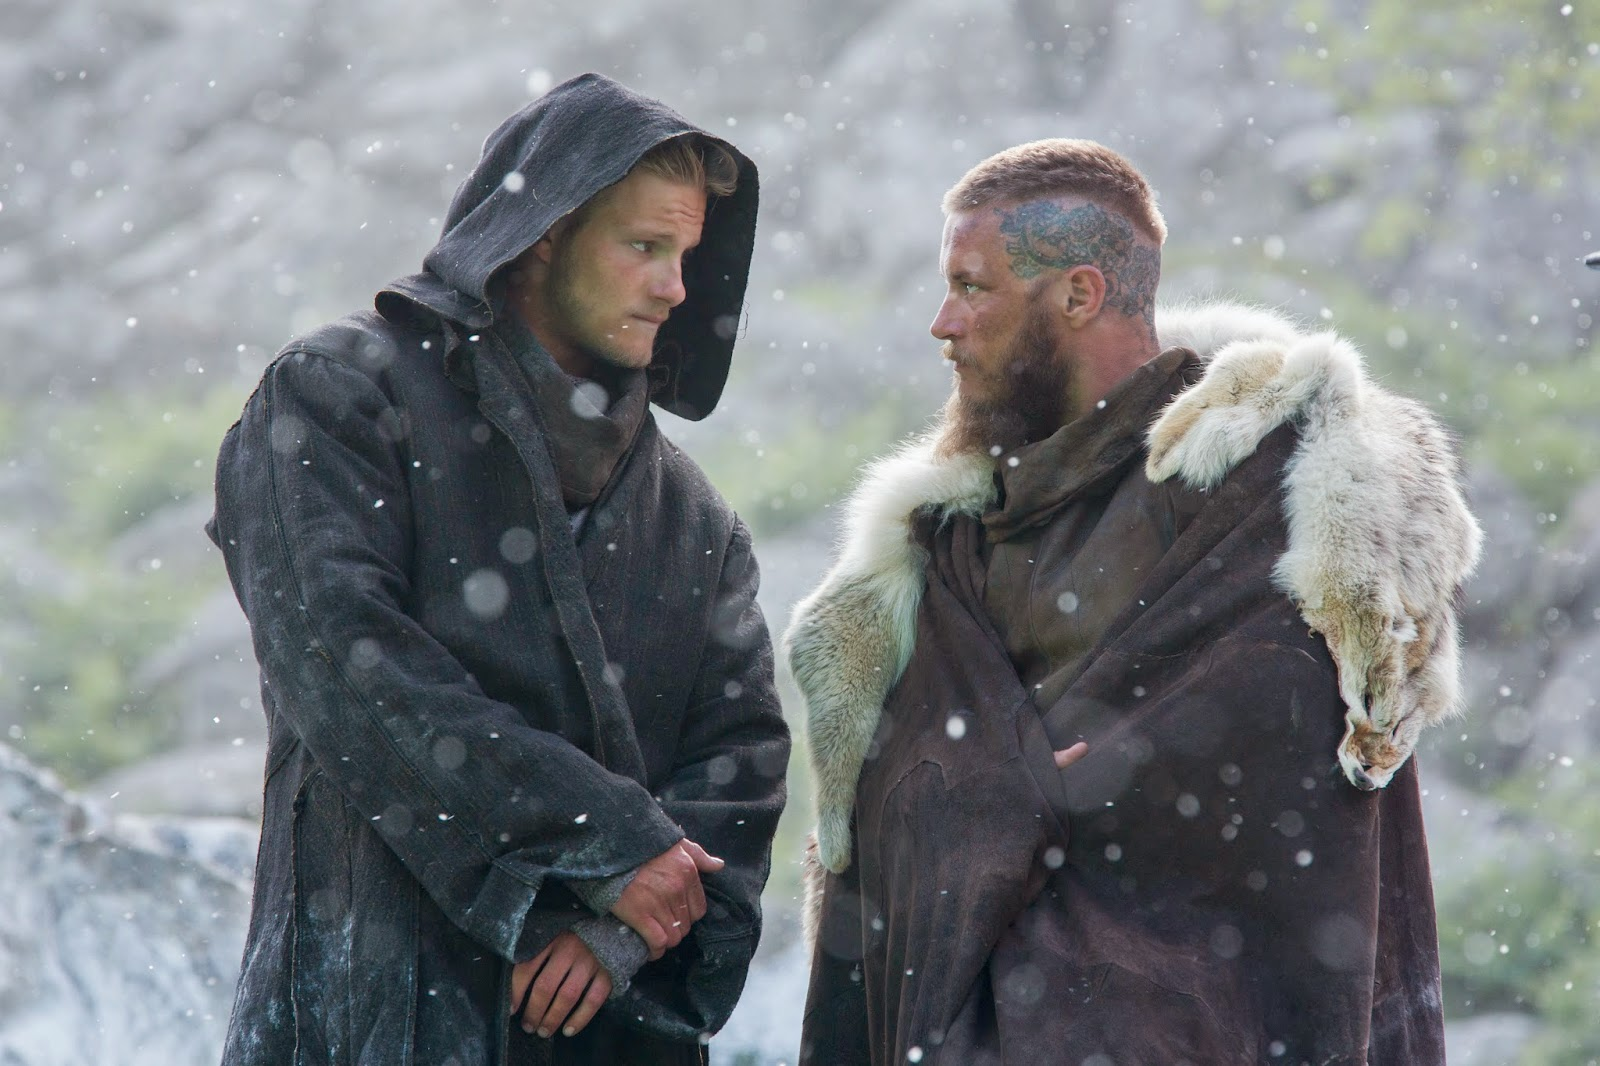 Actriz Porno Stacy Con Dane Harlow first clip & images from #vikings season 3 - sandwichjohnfilms